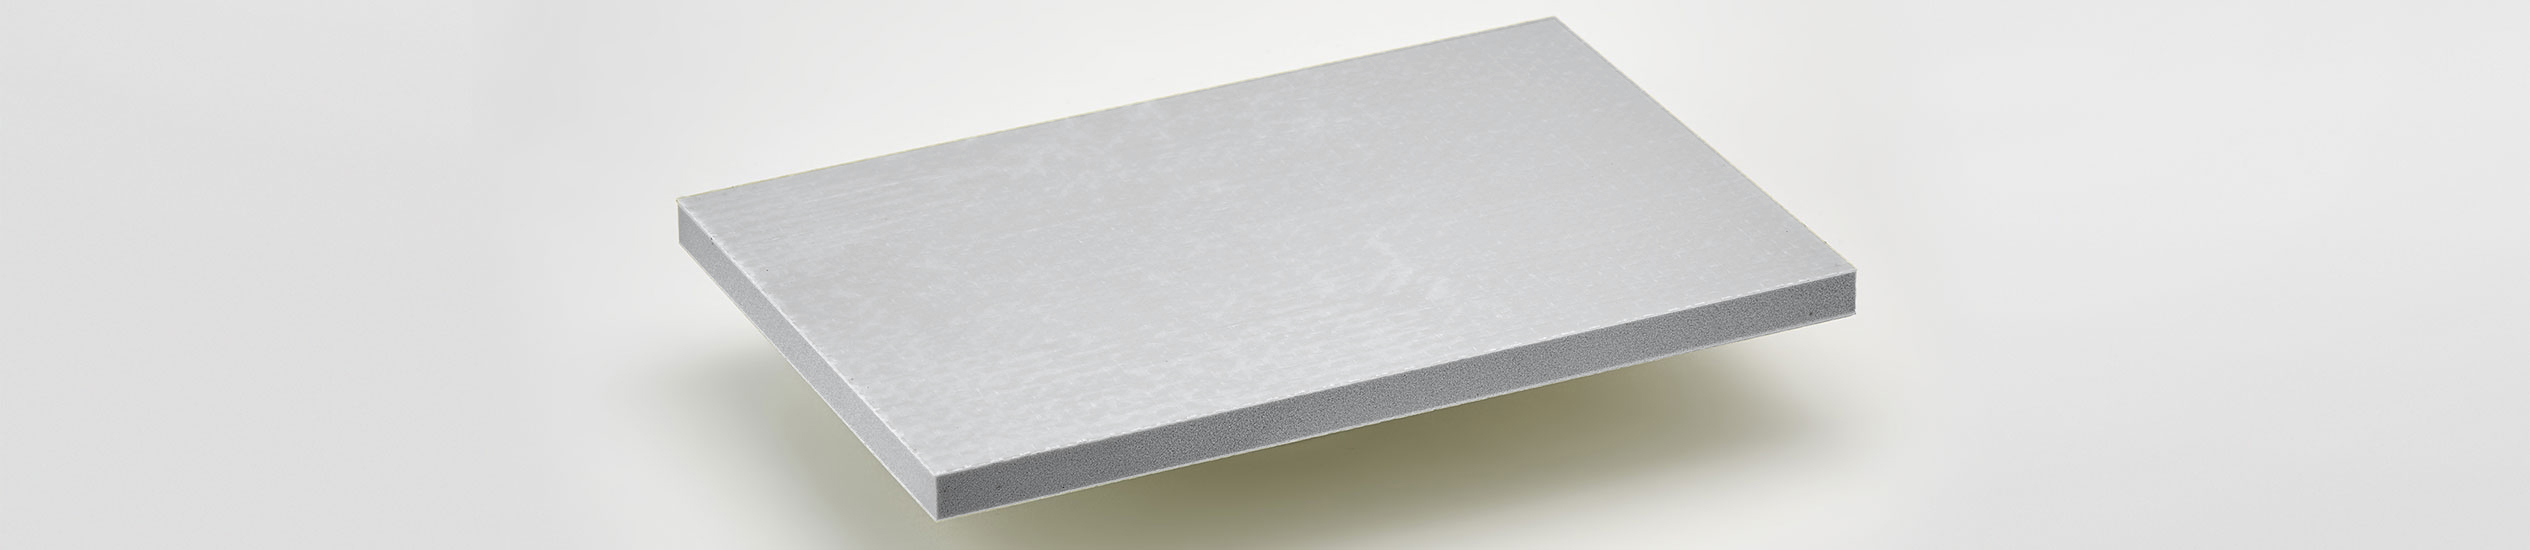 PET-STEP is a lightweight sandwich panel with a core in PET foam with glass fibre reinforced with epoxy resin.